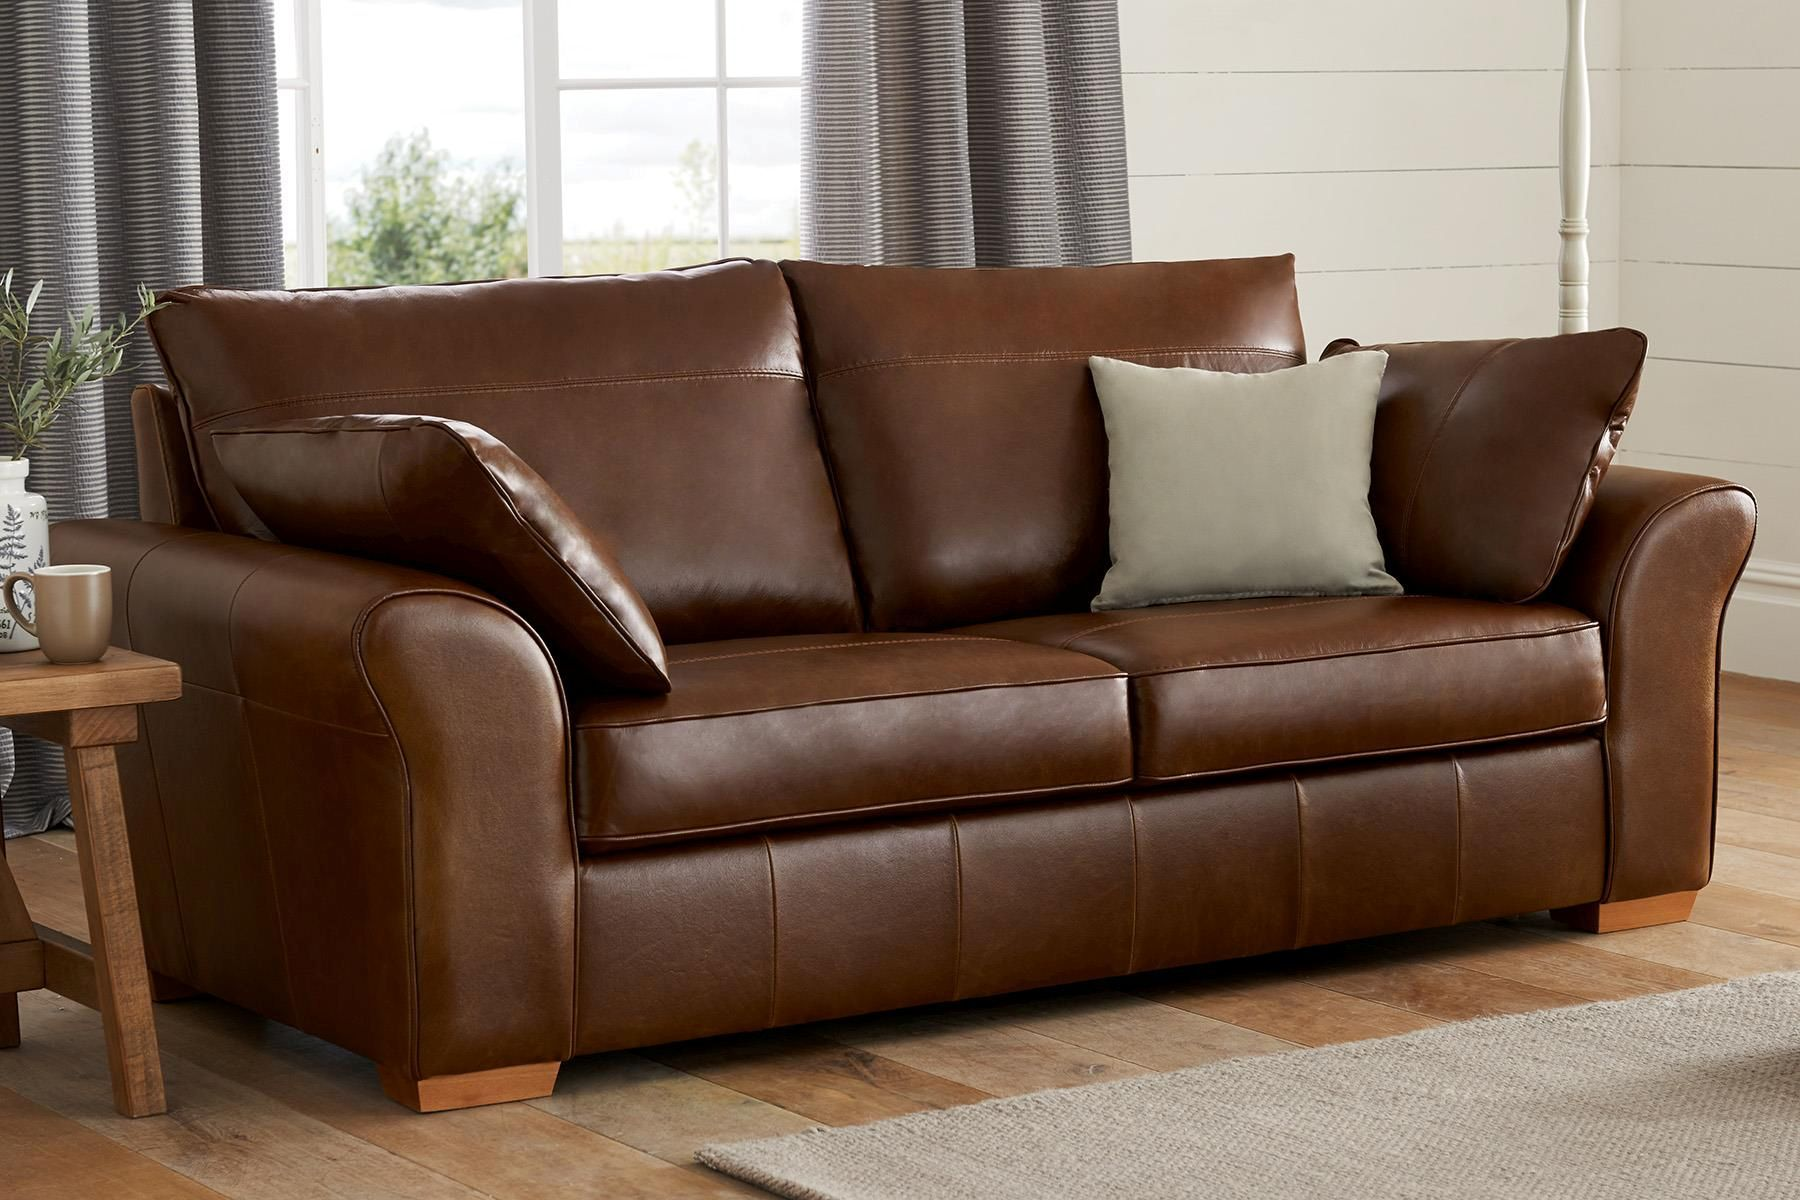 Couch Online Shop Buy Garda Leather Sofas And Armchairs From The Next Uk